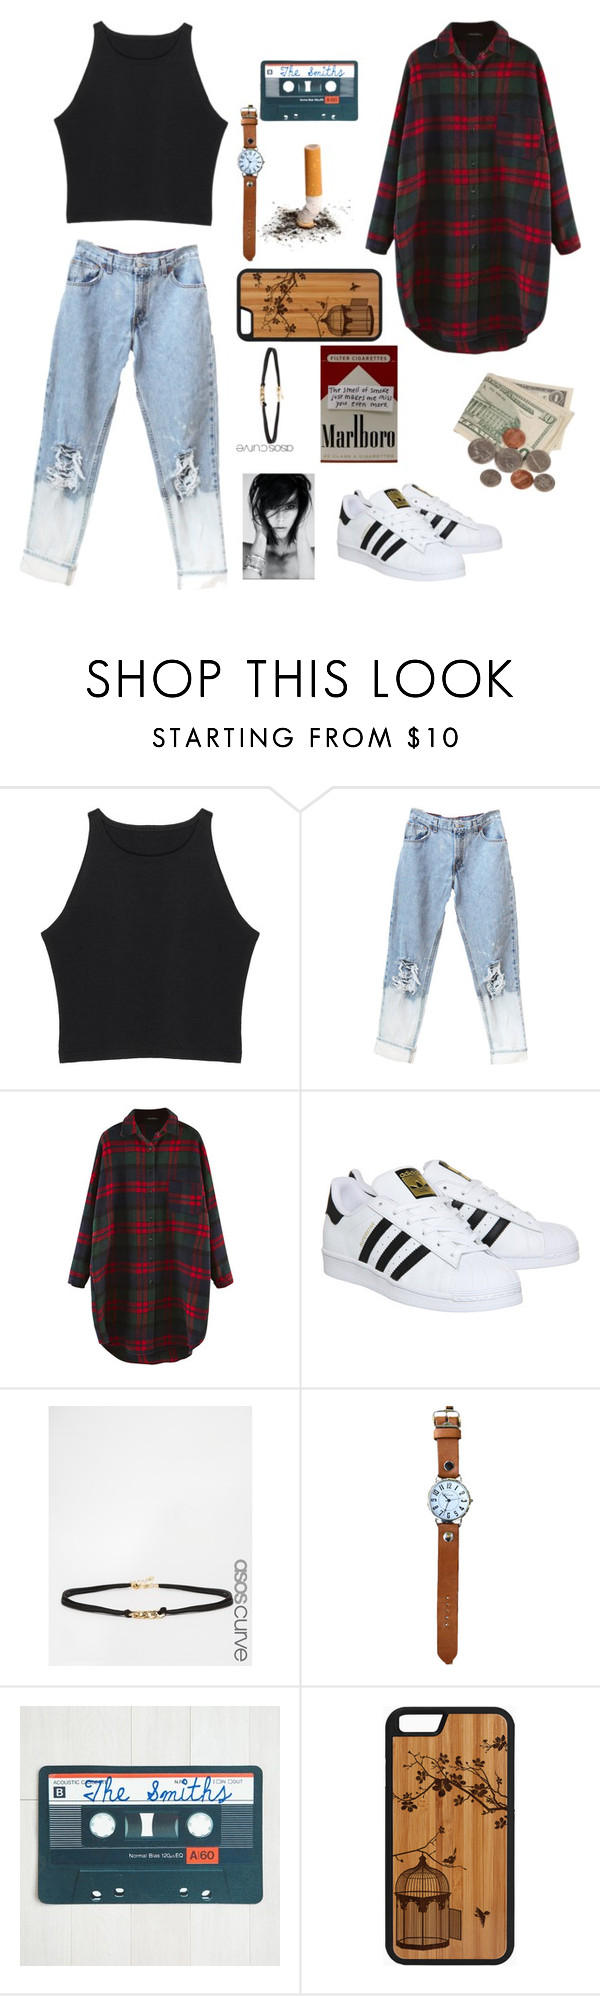 """""""Forgetting is the hardest part"""" by anexushill ❤ liked on Polyvore featuring adidas and ASOS Curve"""